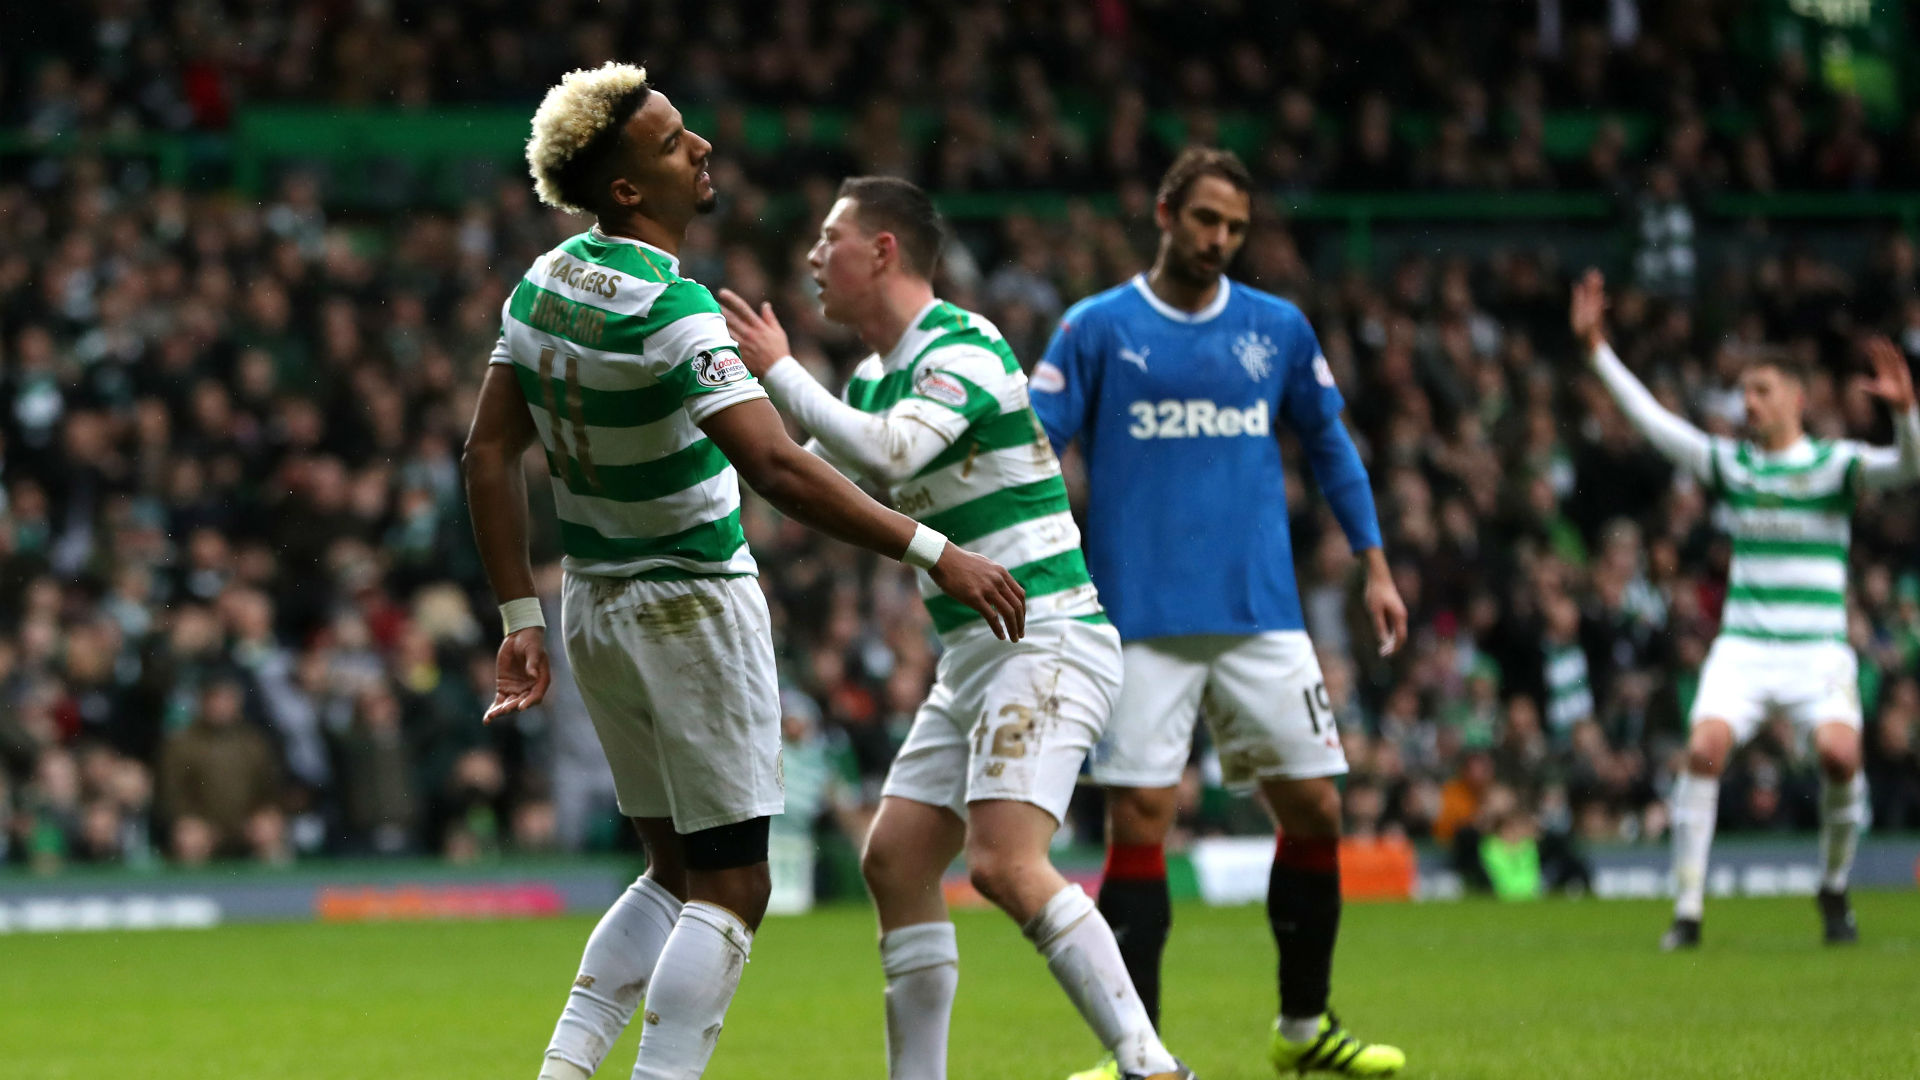 Faultless Rangers could have beaten Celtic, says Murty